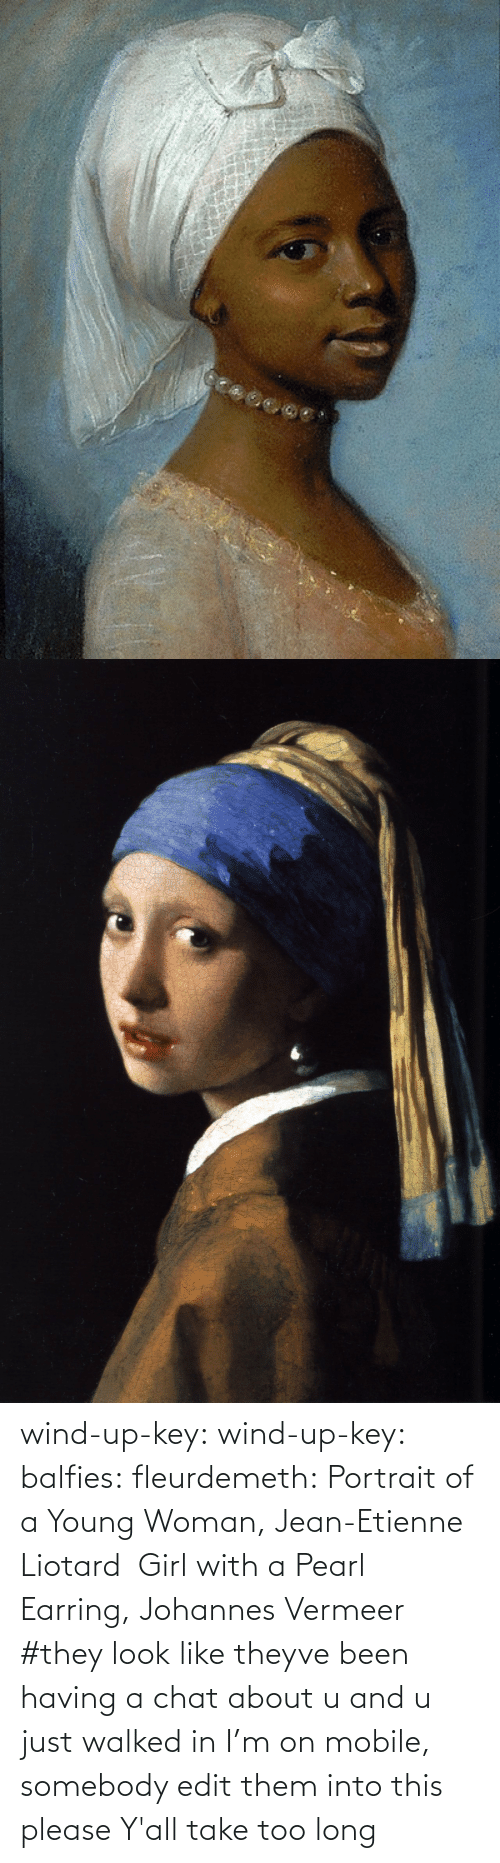 young woman: wind-up-key: wind-up-key:   balfies:  fleurdemeth:  Portrait of a Young Woman, Jean-Etienne Liotard  Girl with a Pearl Earring, Johannes Vermeer   #they look like theyve been having a chat about u and u just walked in   I'm on mobile, somebody edit them into this please   Y'all take too long